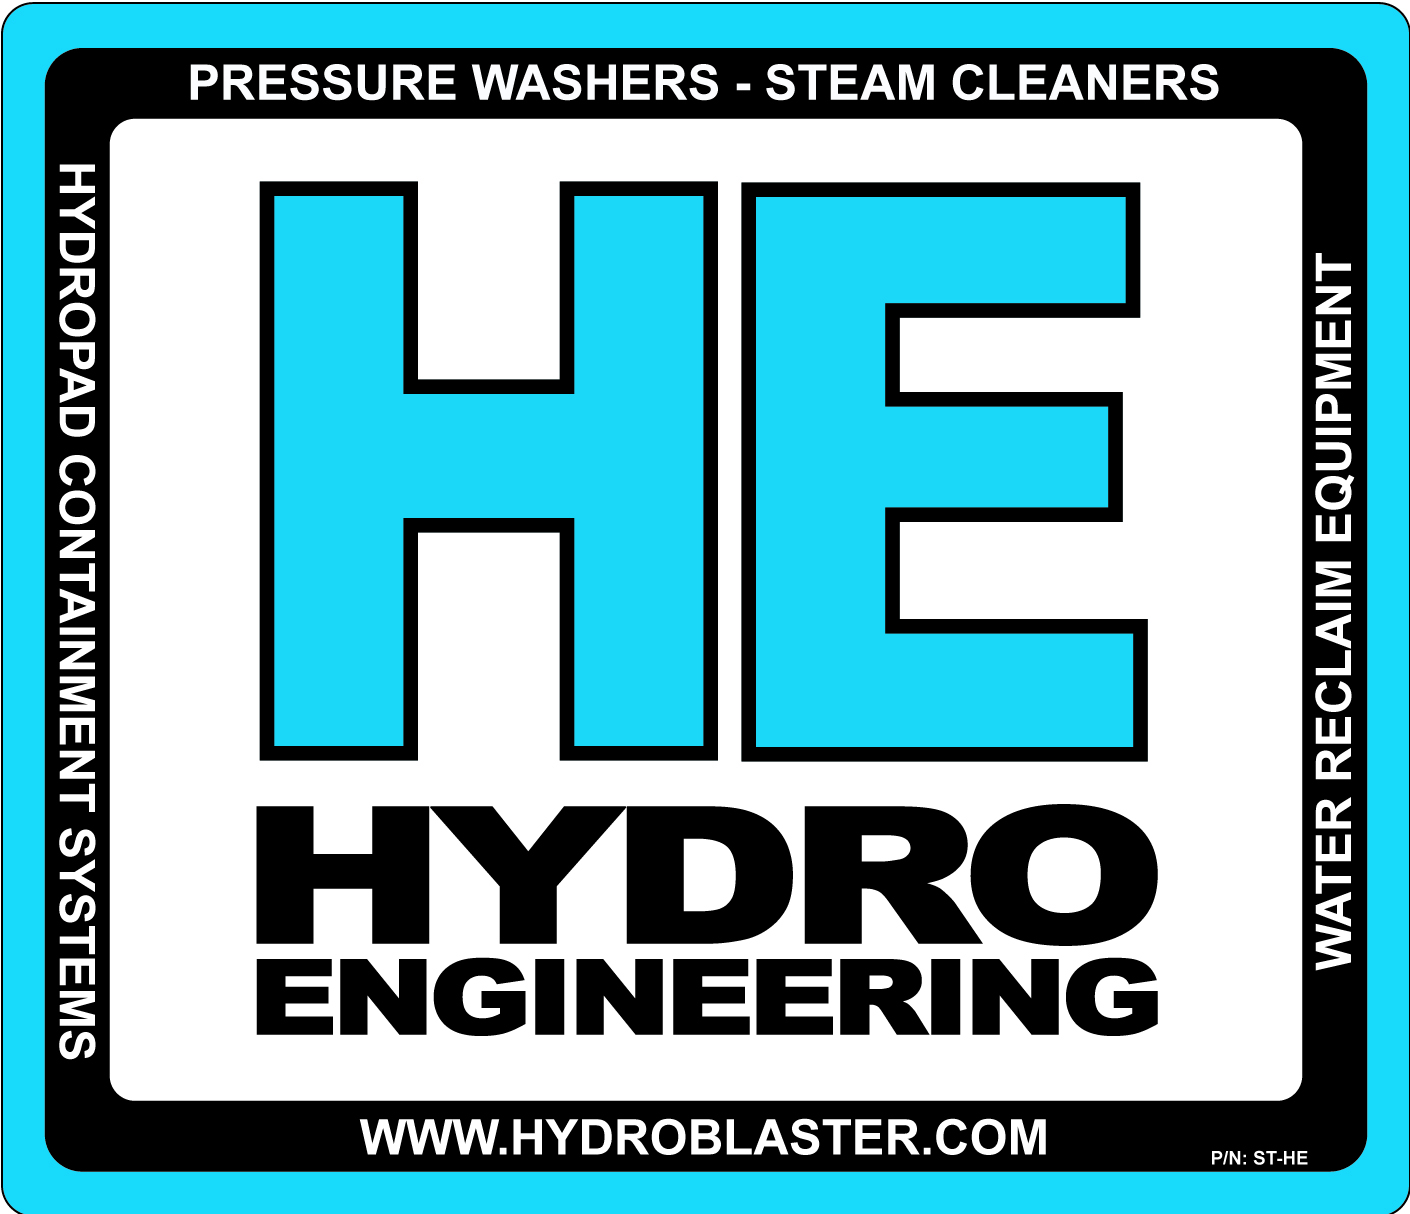 Hydro Engineering Inc